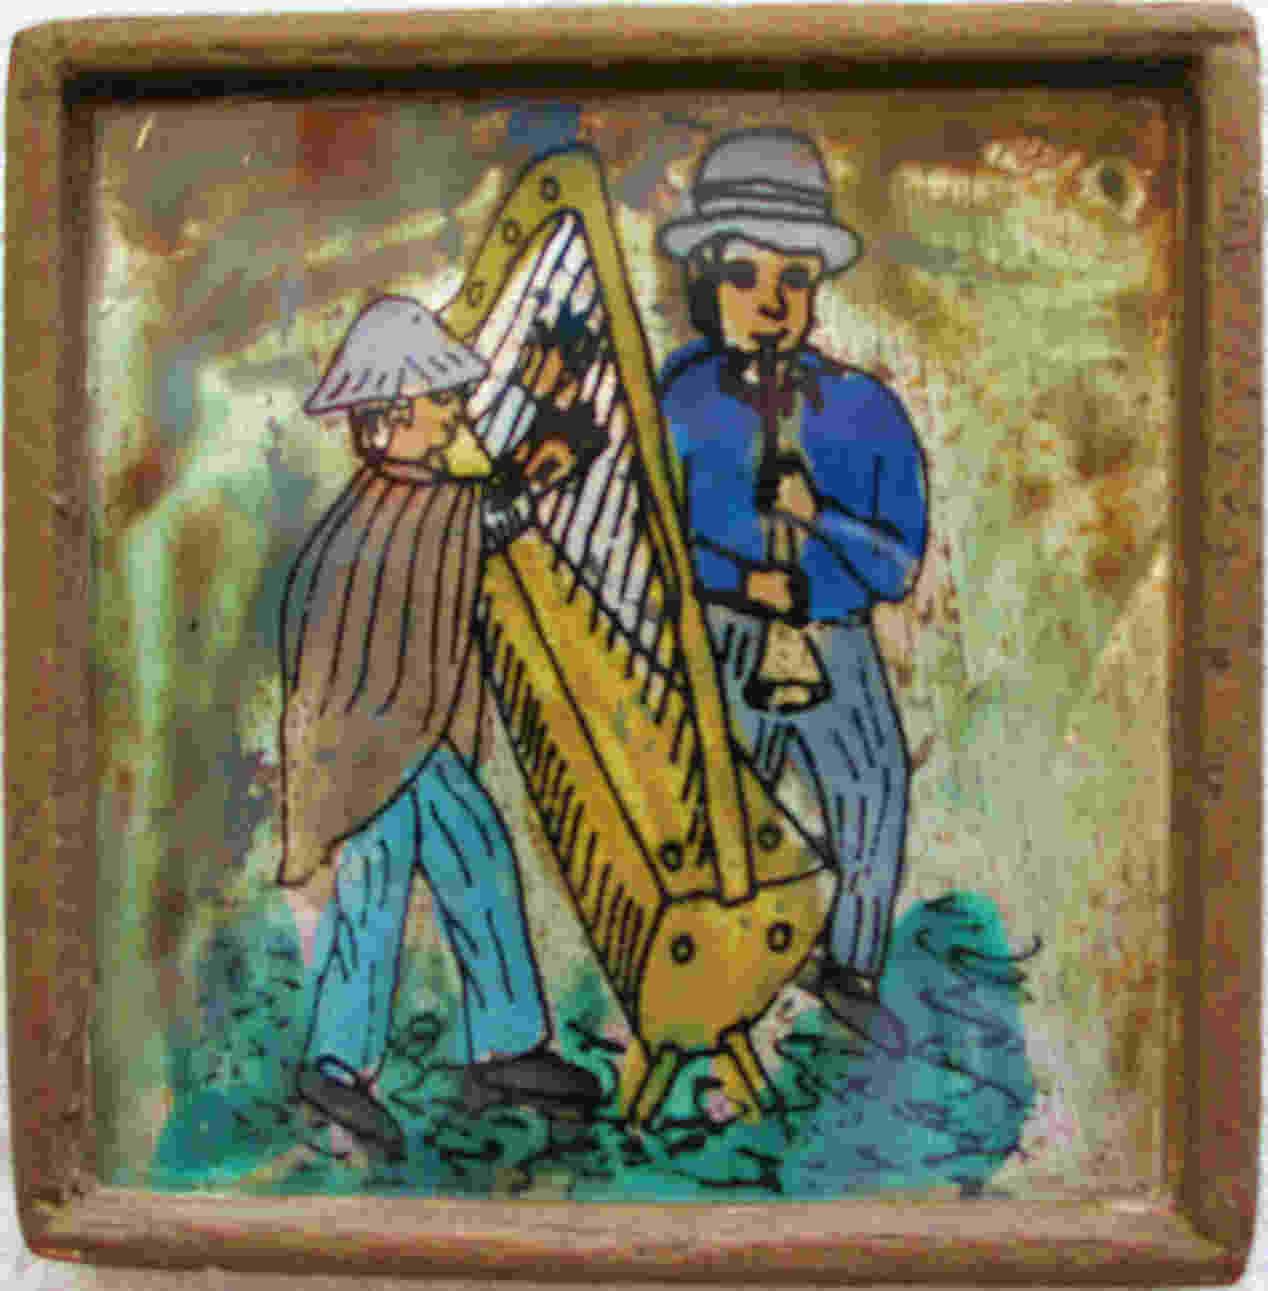 Painting on glass from Peru